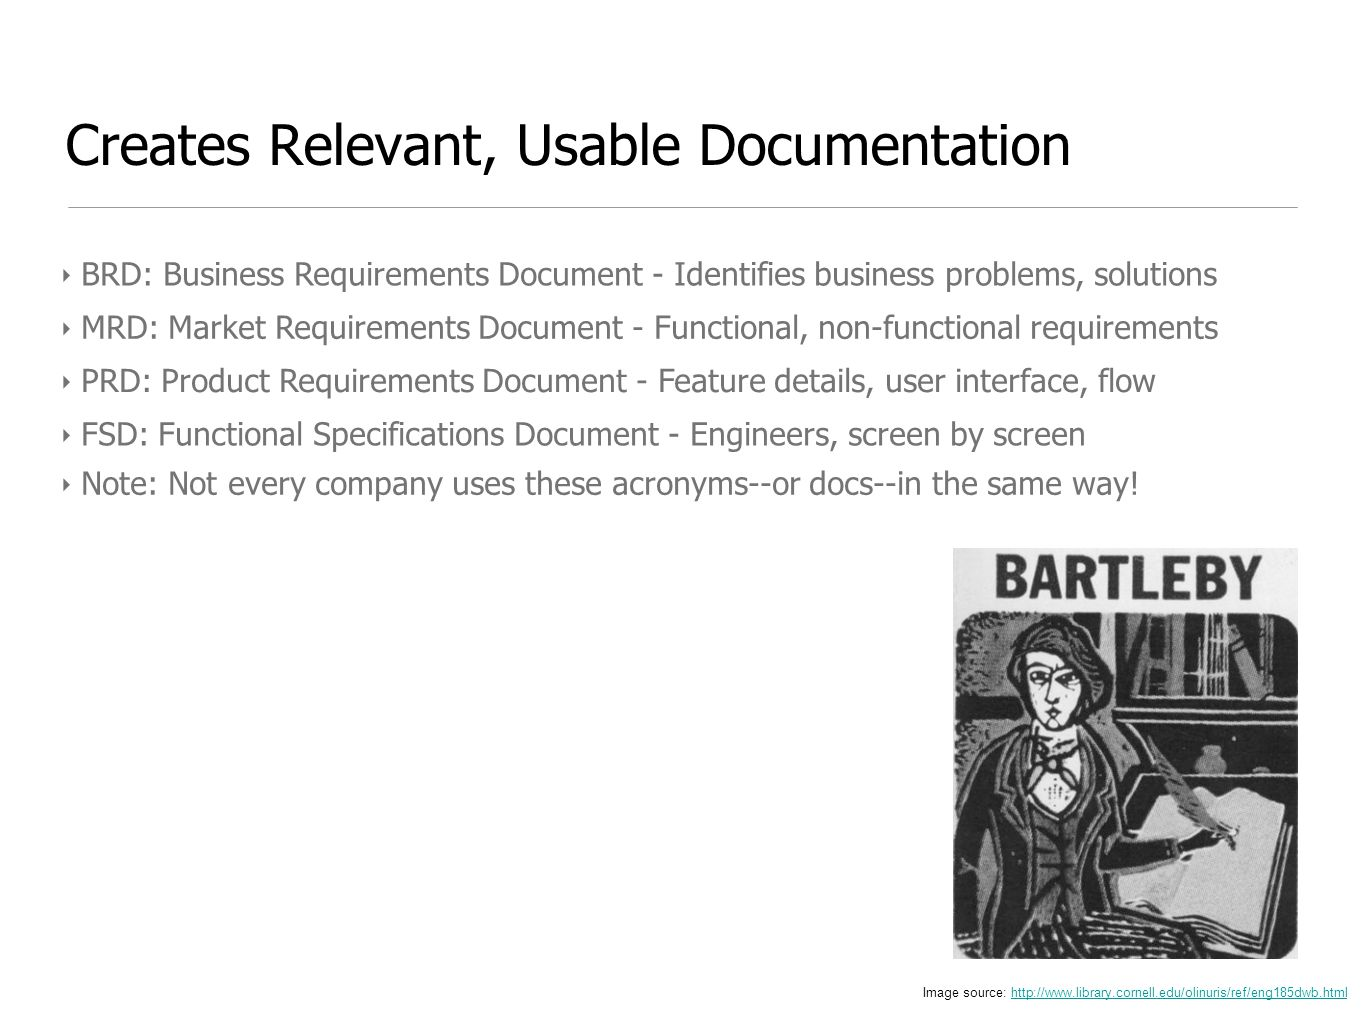 Creates Relevant, Usable Documentation